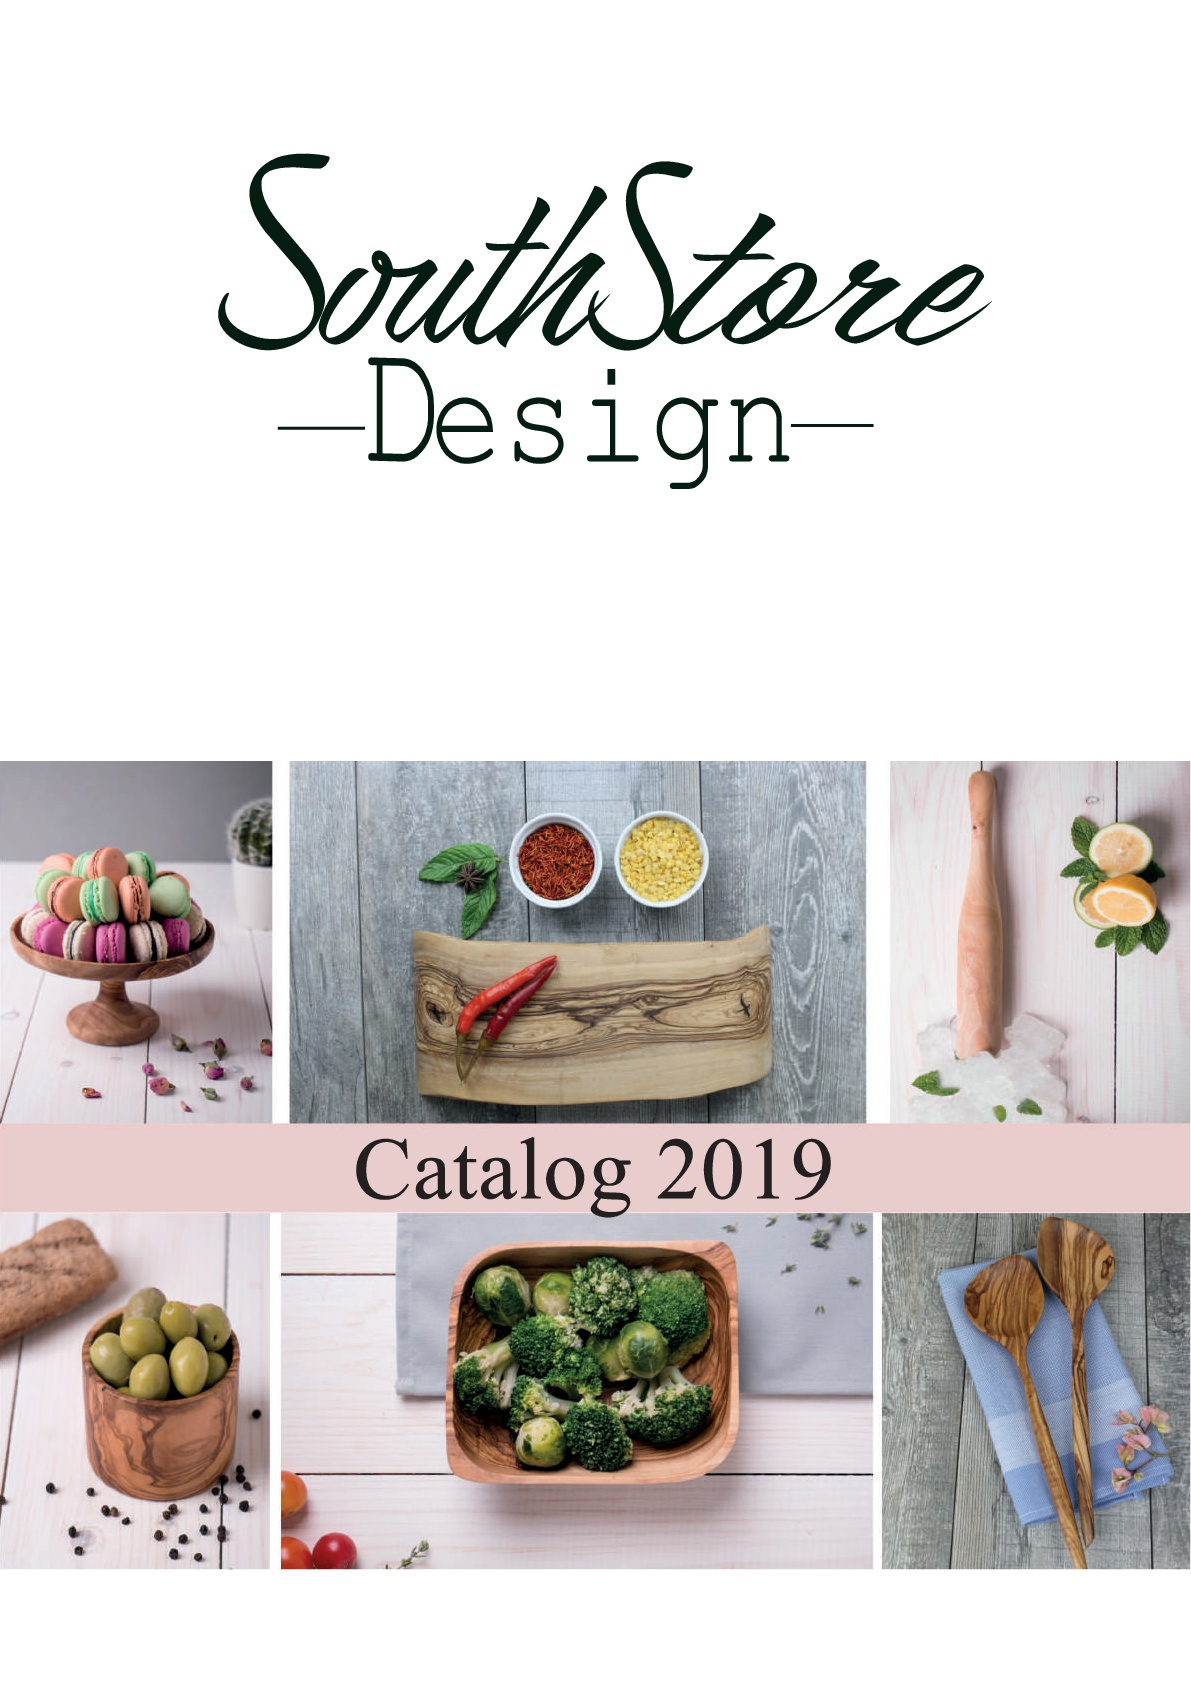 catalogue ssd 2018 2019 mom-compressed-pages-1-001